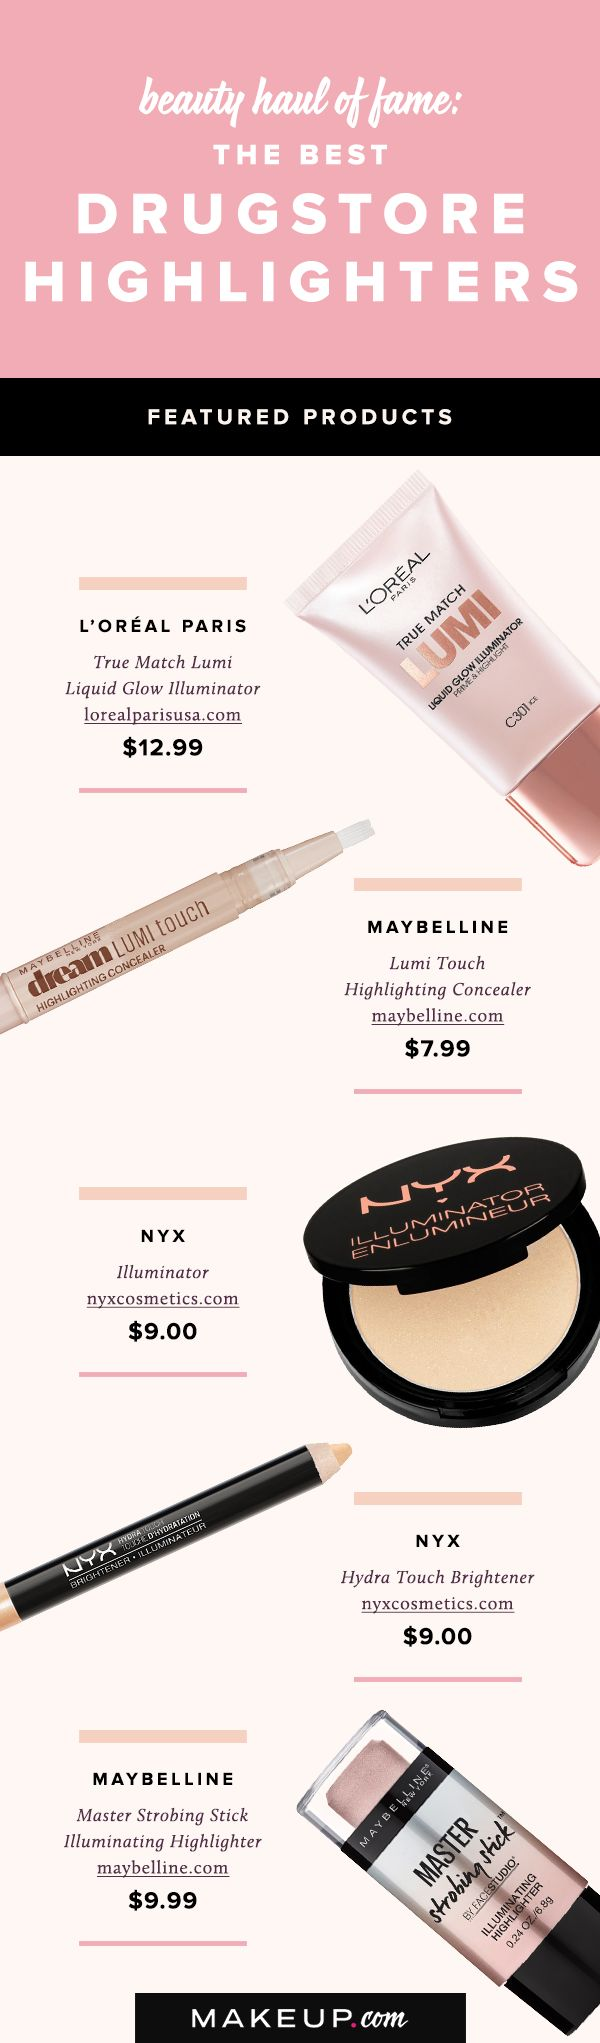 Highlighters use to only be available in department stores, but not any more! These are the best highlighters that can be found at your local drugstore, so see our picks for the best affordable highlighters now.